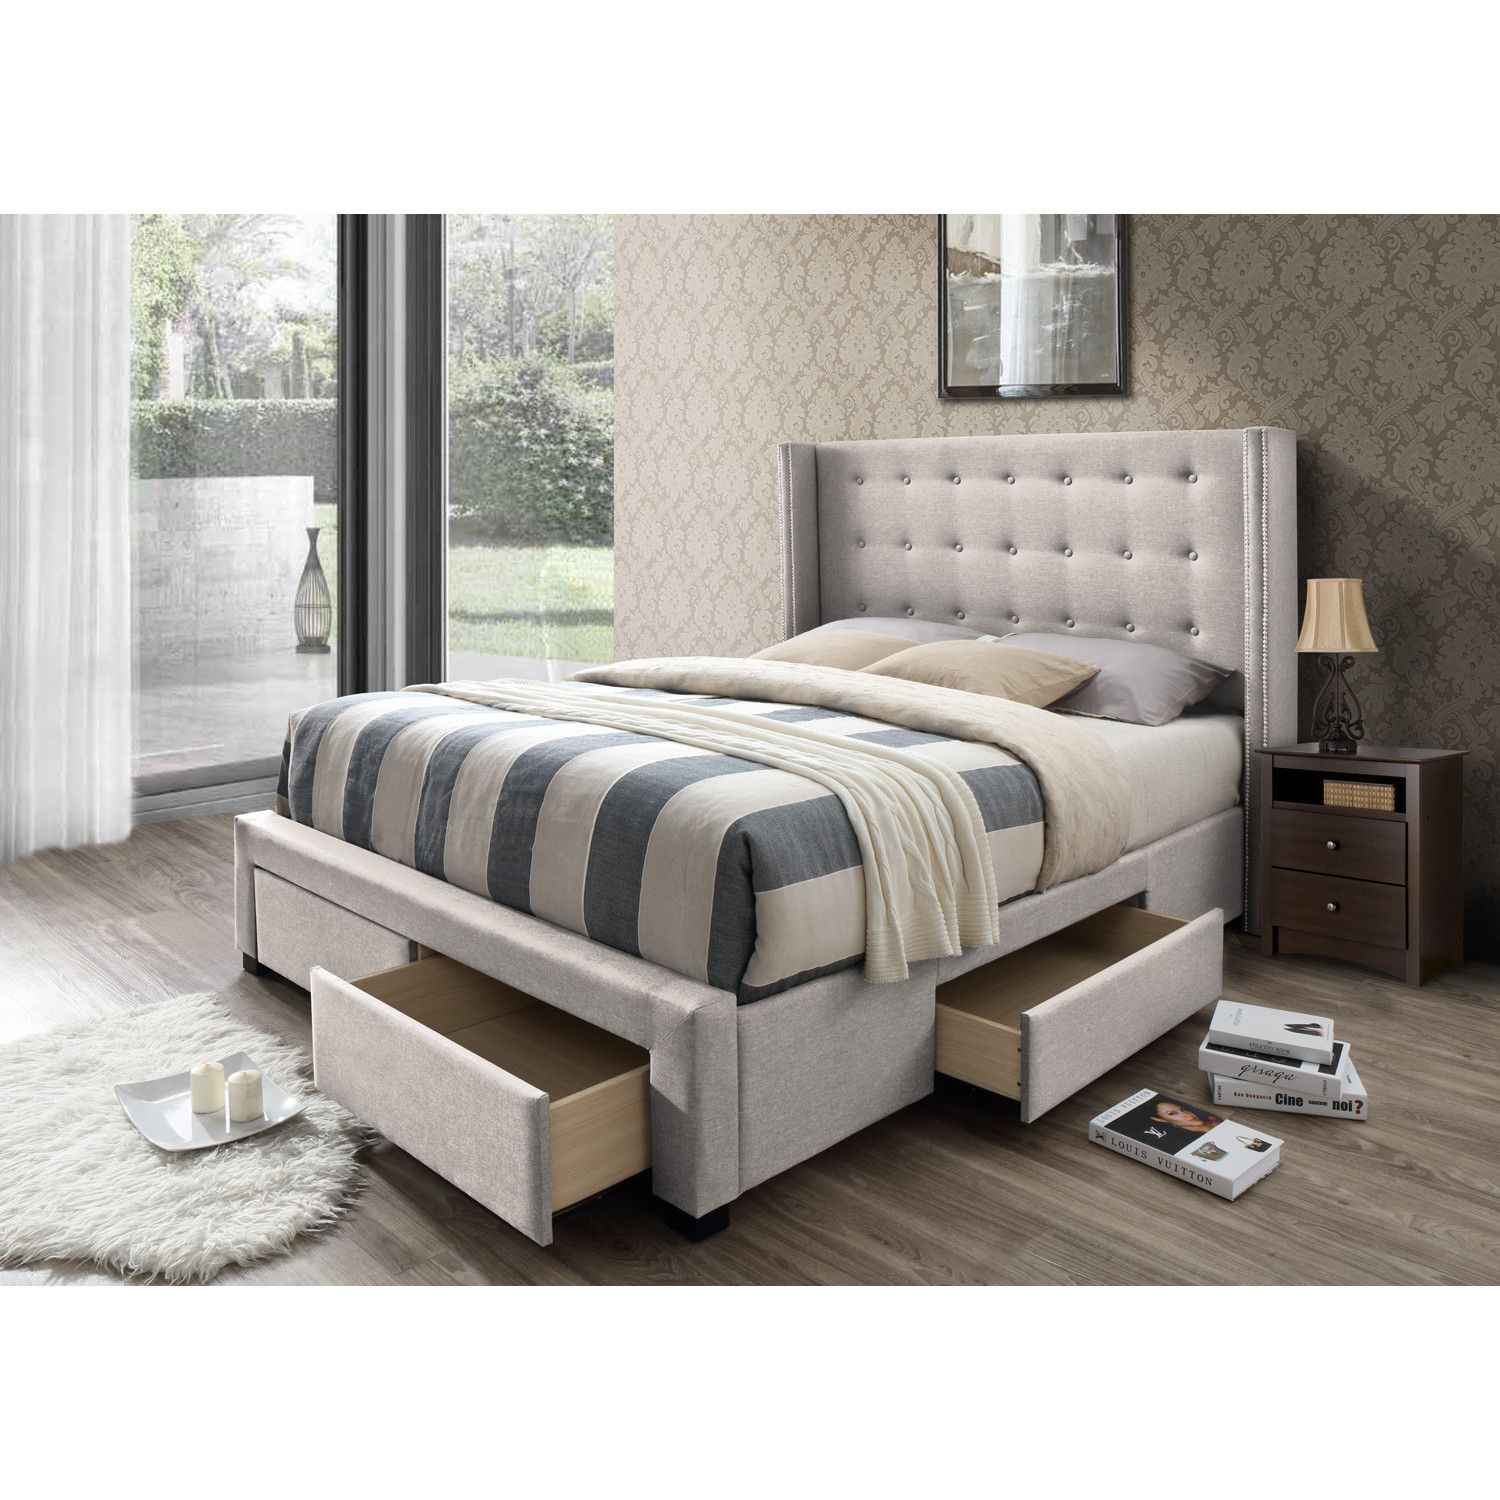 You'll love the Thousand Oaks Storage Platform Bed at